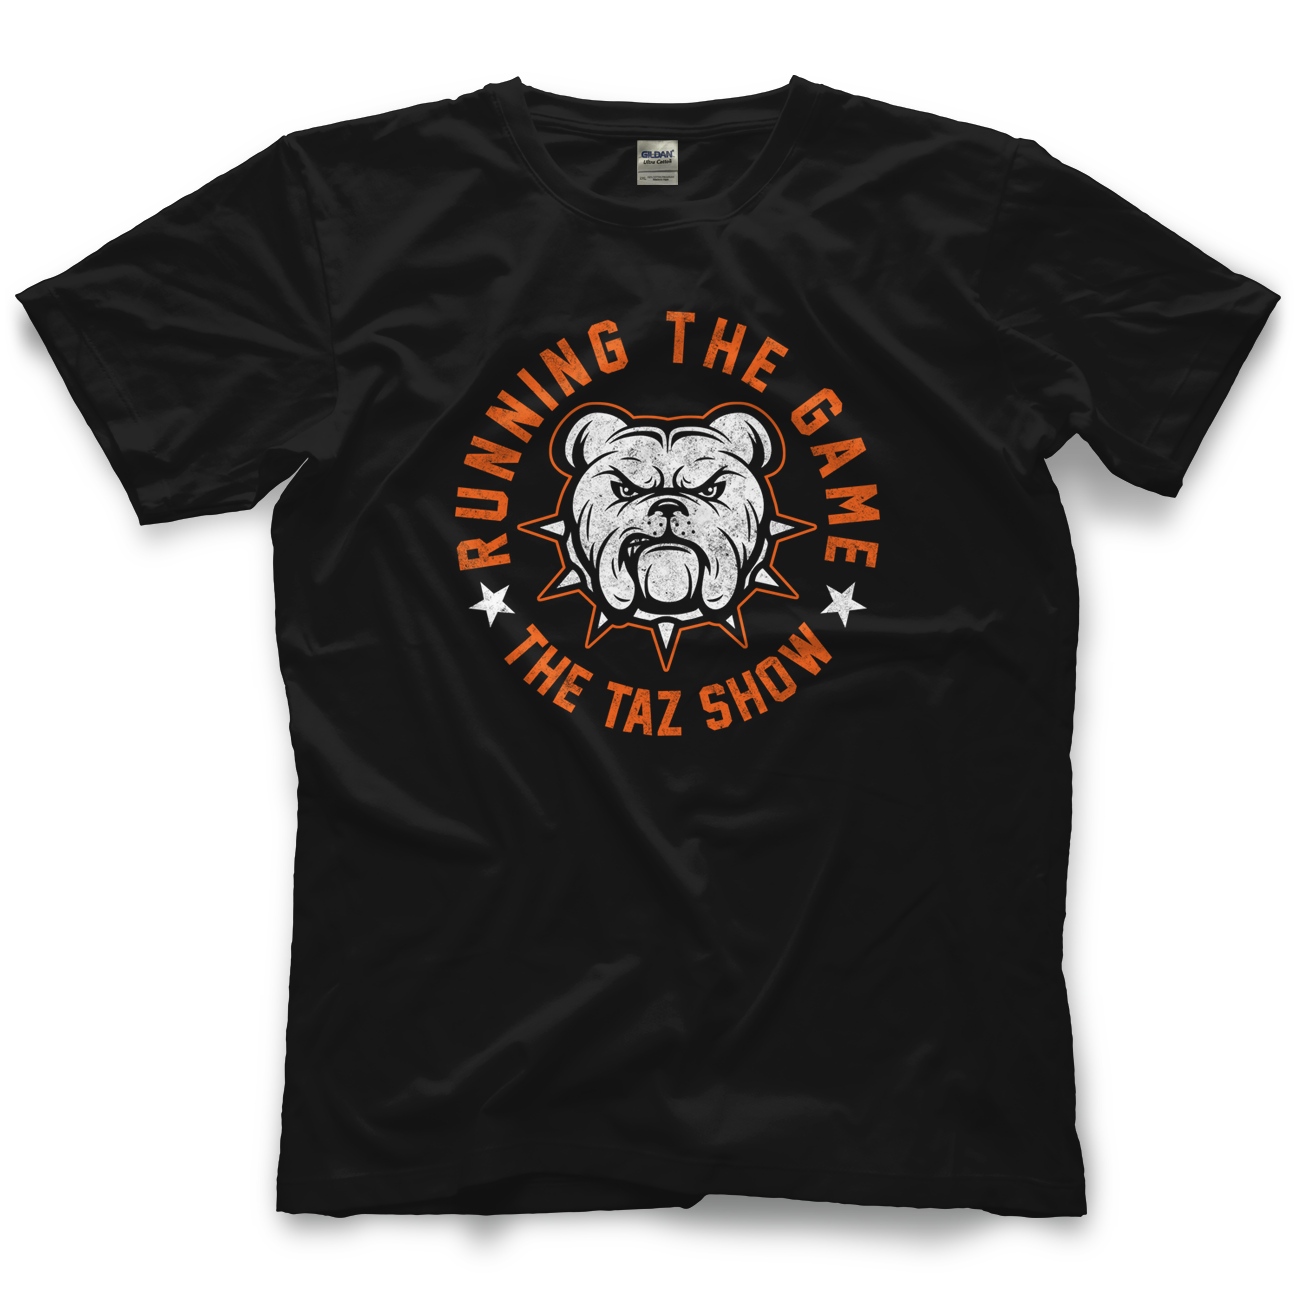 Clotheslined Apparel - Vintage Blend Soft T-shirt The Taz Show